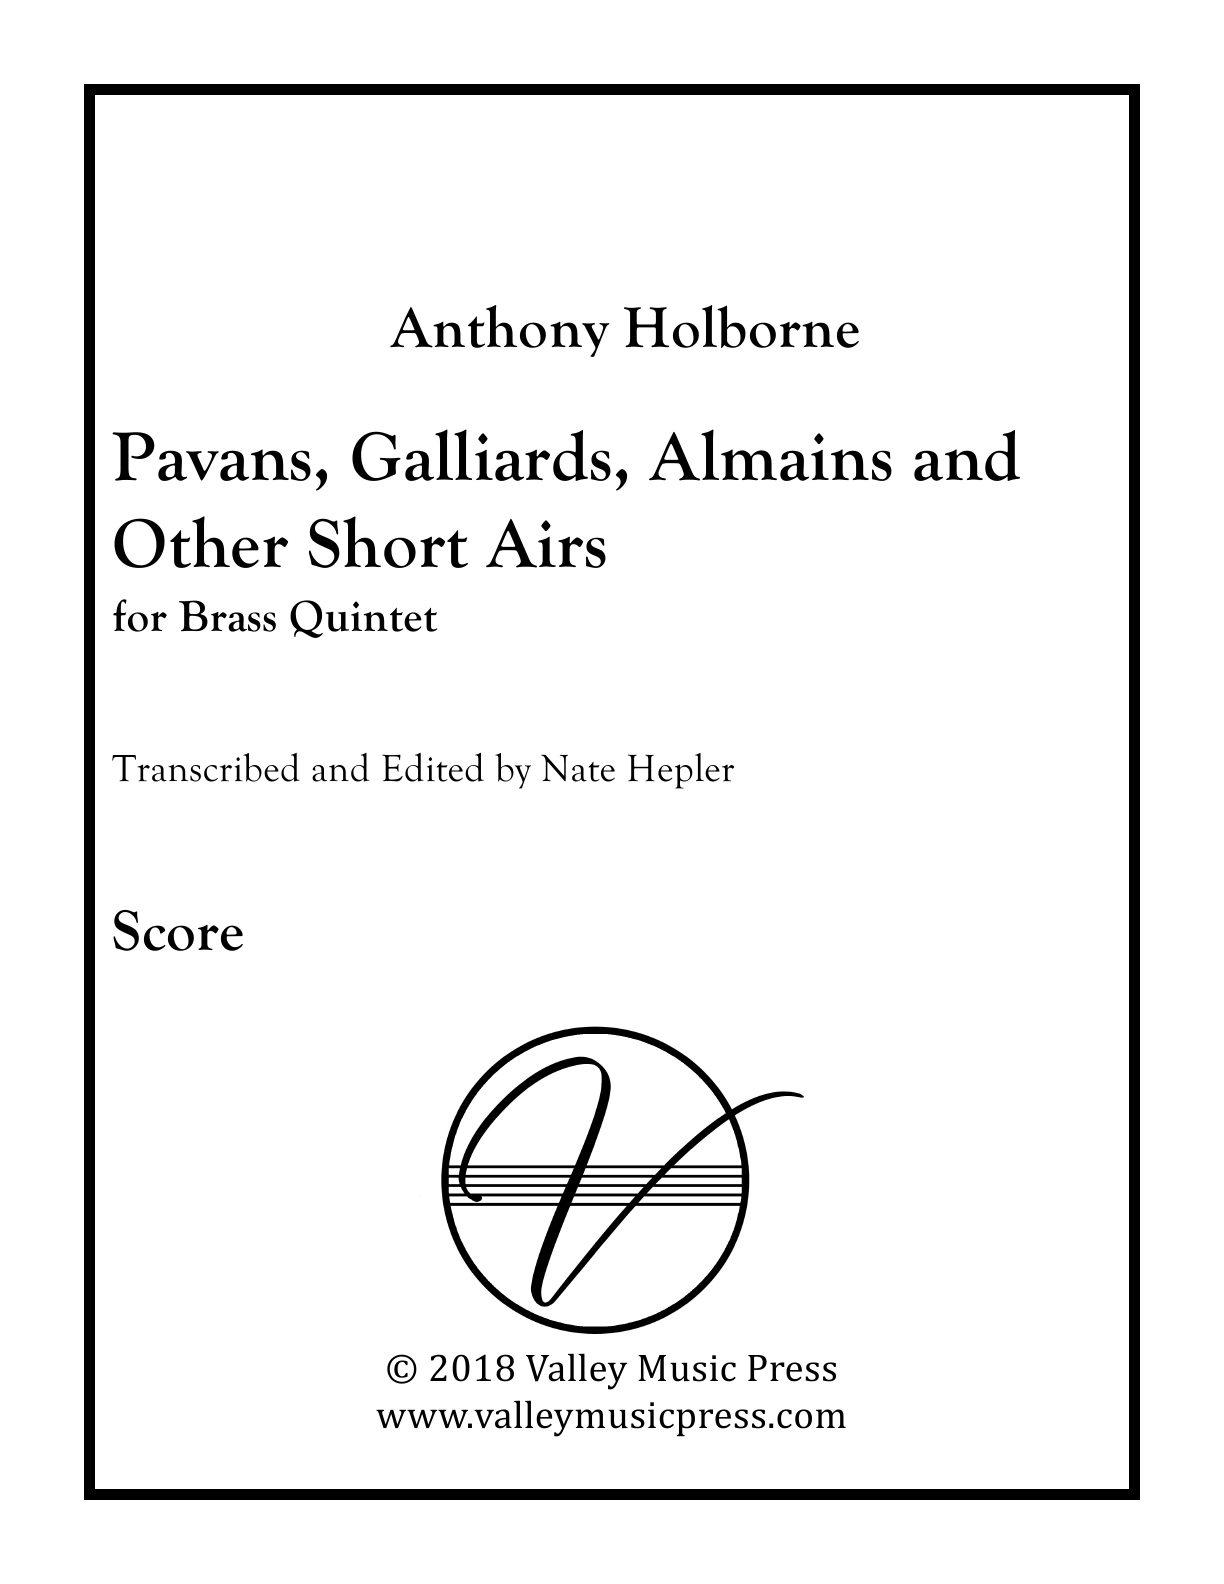 Holborne - Pavans, Galliards, Almains and Short Airs (All) (BQ) - Click Image to Close